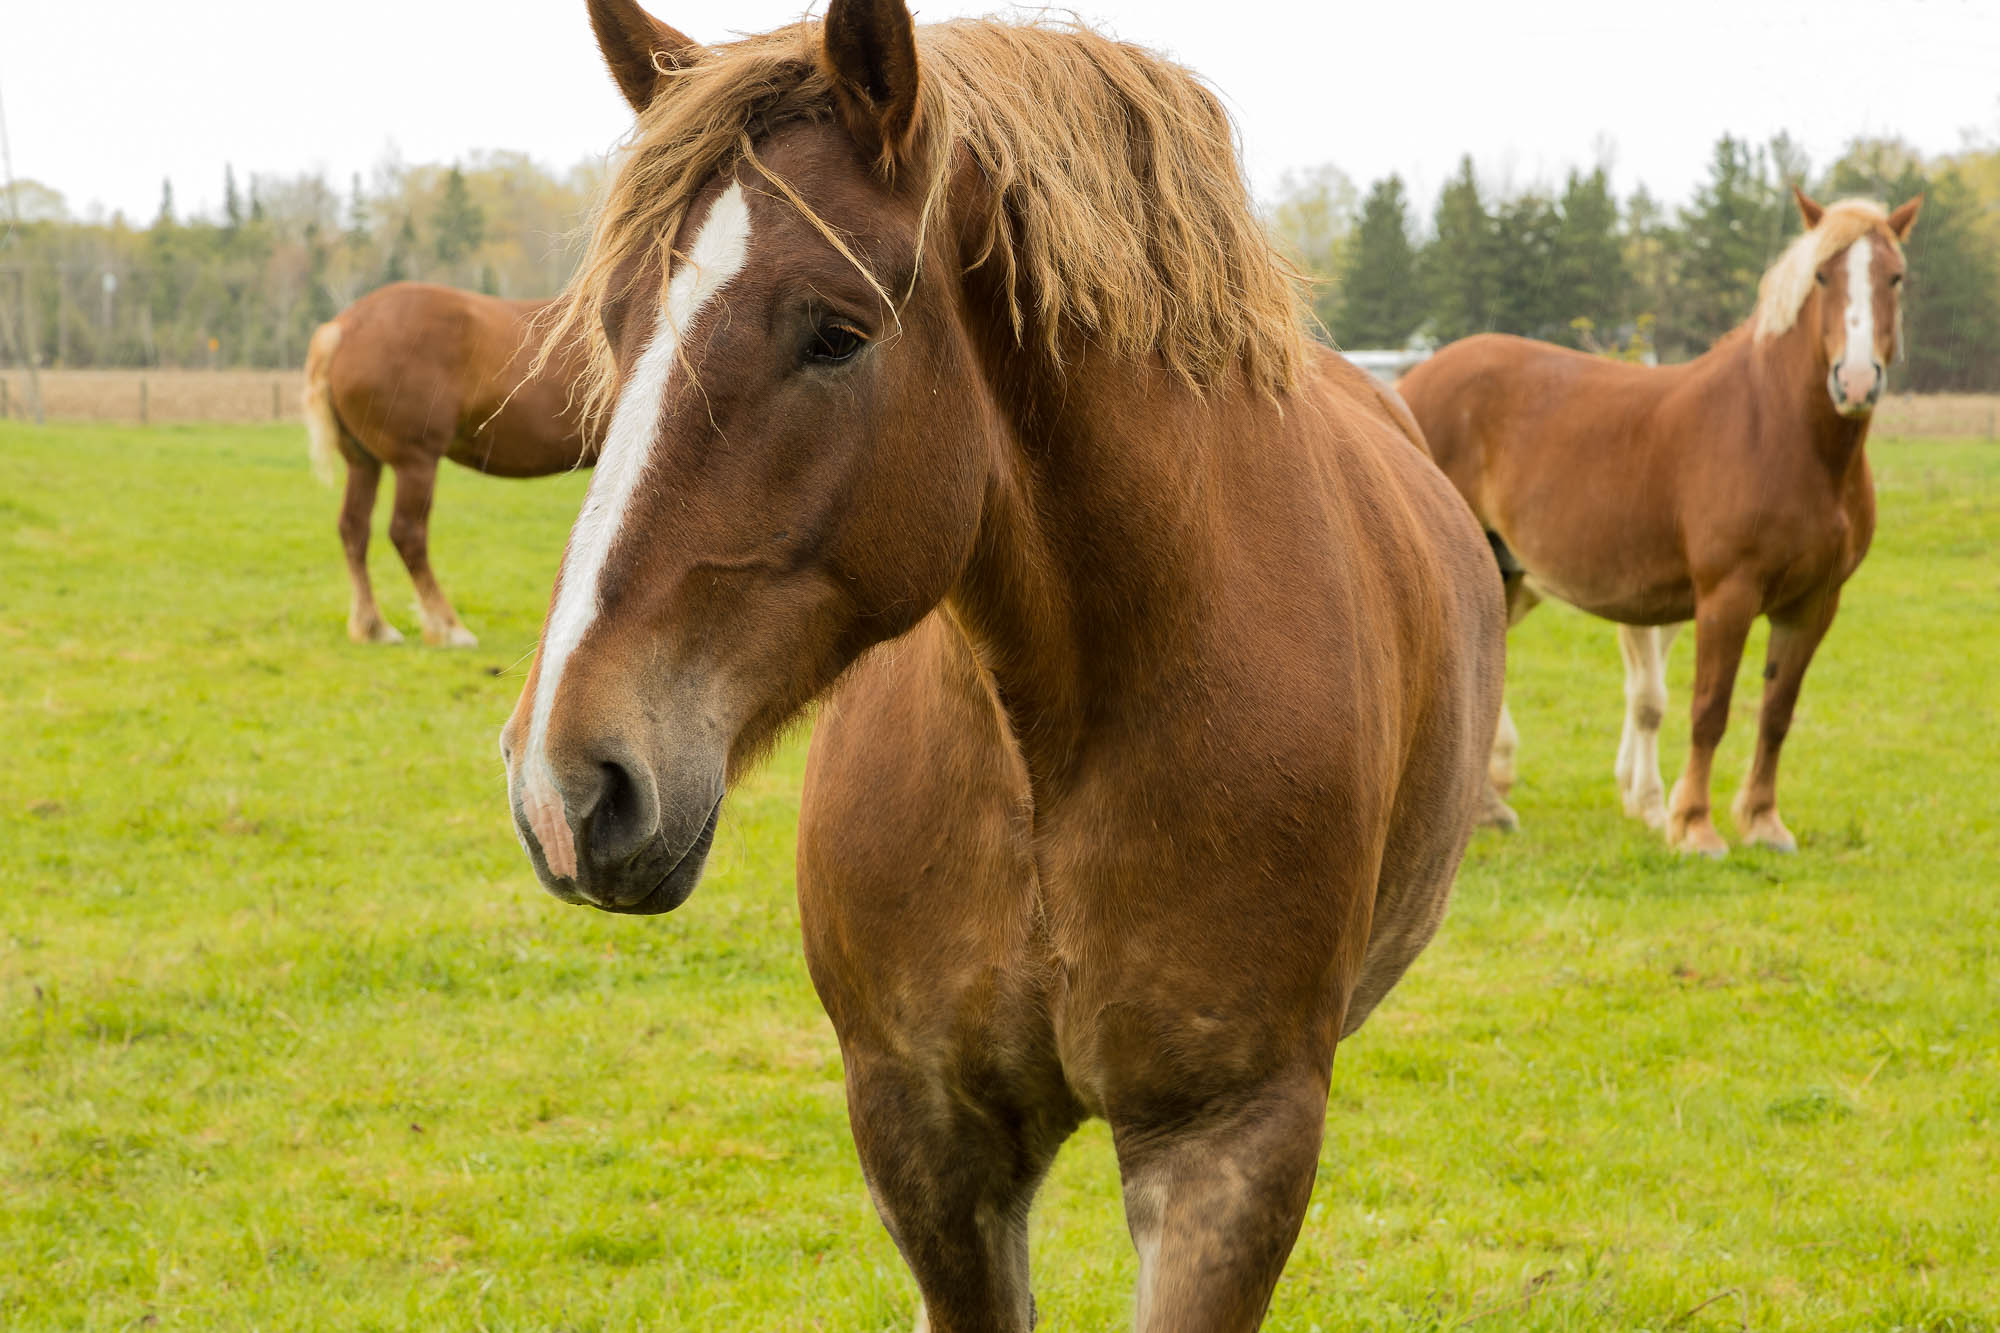 image of horse in country field